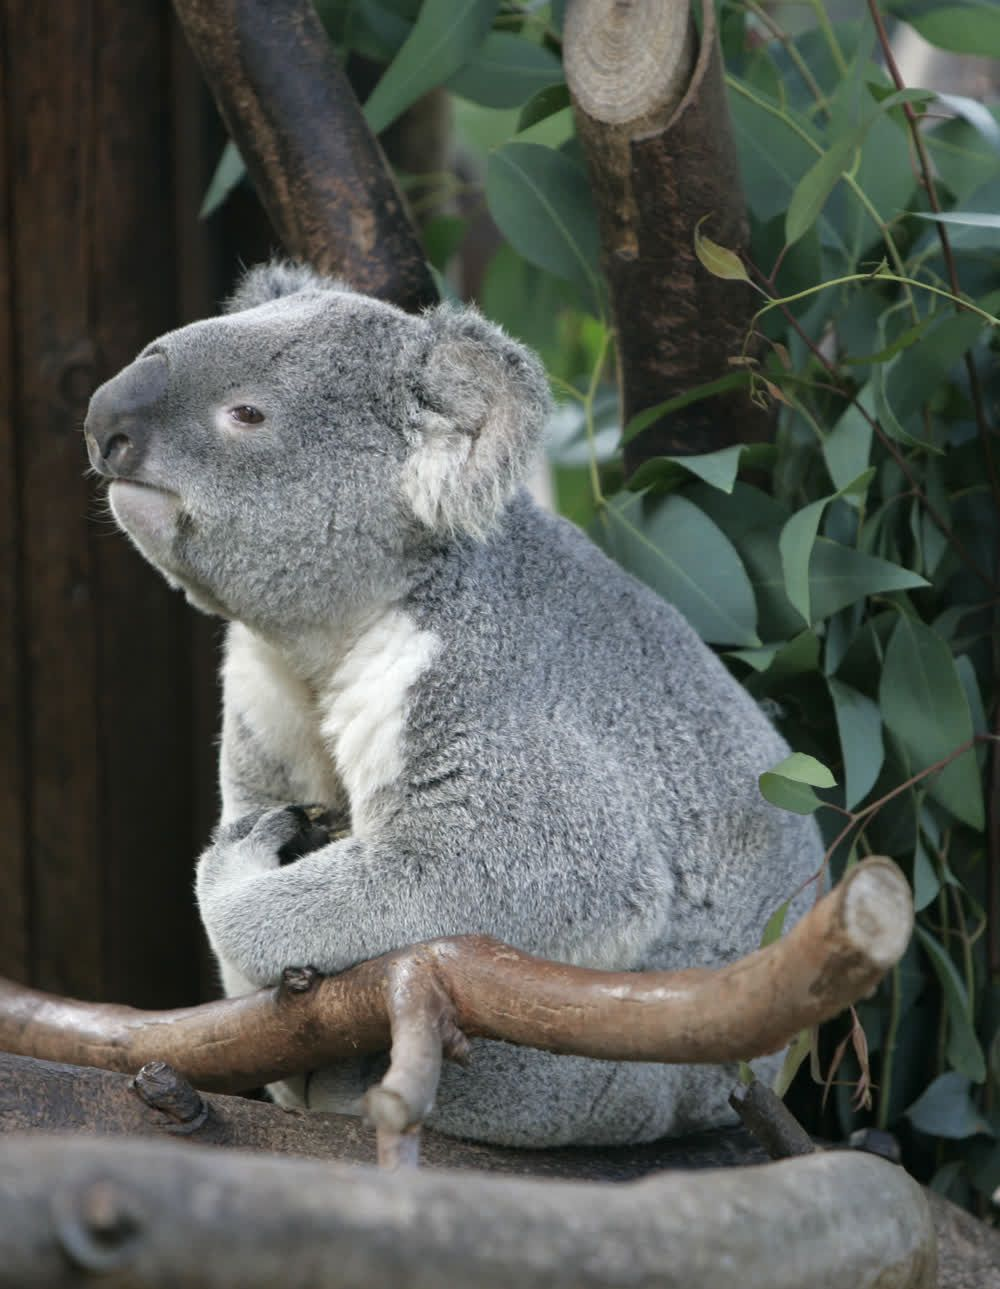 Adorable Bored Koala Bear at the Zoo in San Diego